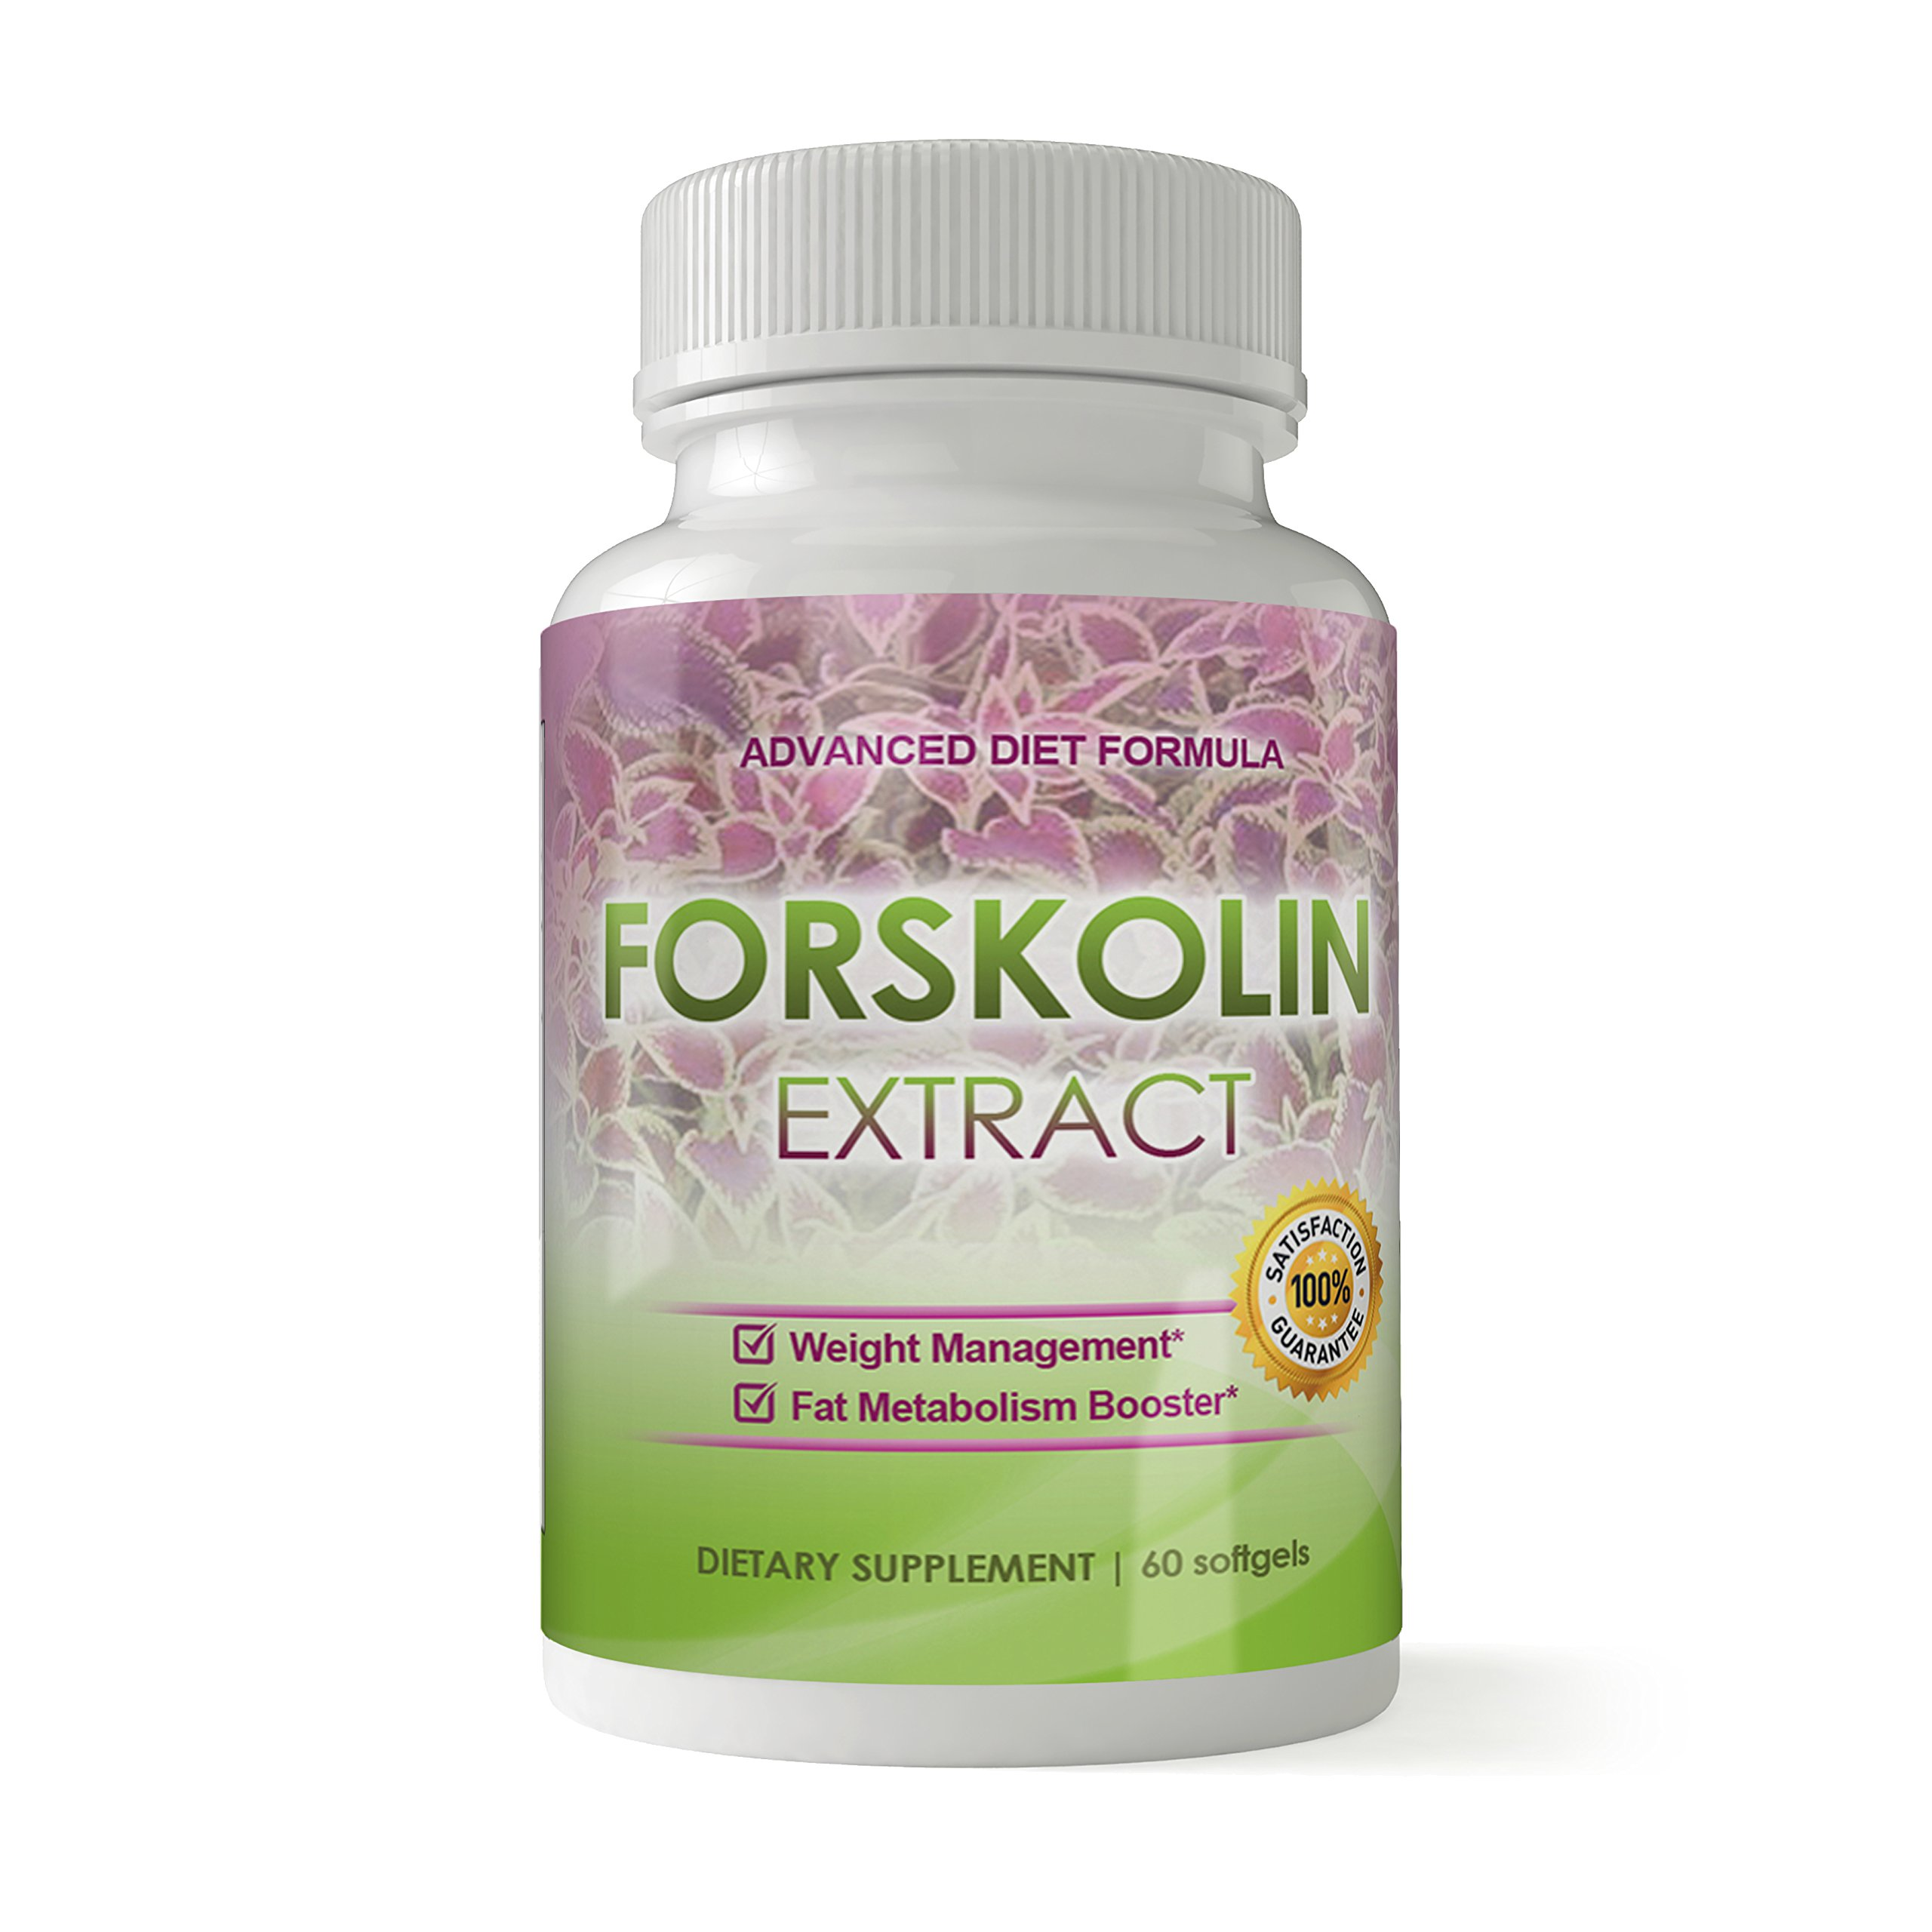 100% Pure Forskolin Extract I 250mg Premium Grade Coleus Forskohlii 60 Capsules I Appetite Suppressant, MAX Strength Belly Fat Burner, Carb Blocker, Weight Loss Supplement I Includes Bonus Diet eBook by Totally Natural Remedies